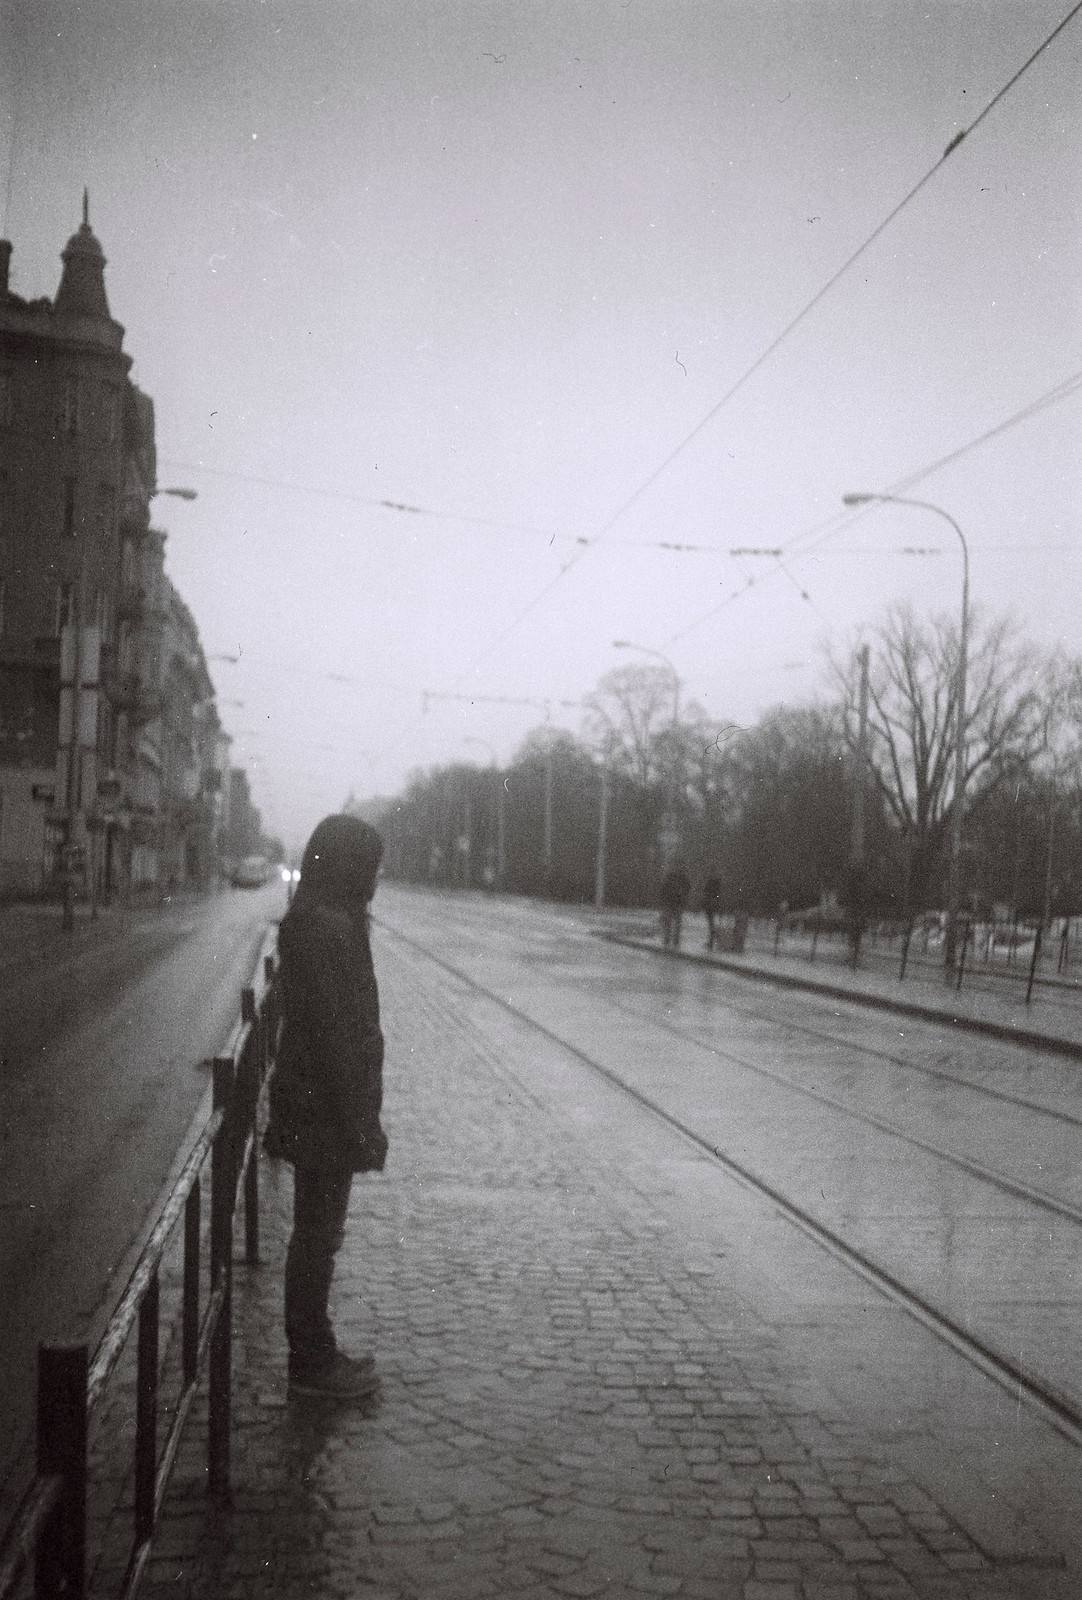 Agfa Billy Record 7.7 - Woman at Tram Stop in Rainy Day